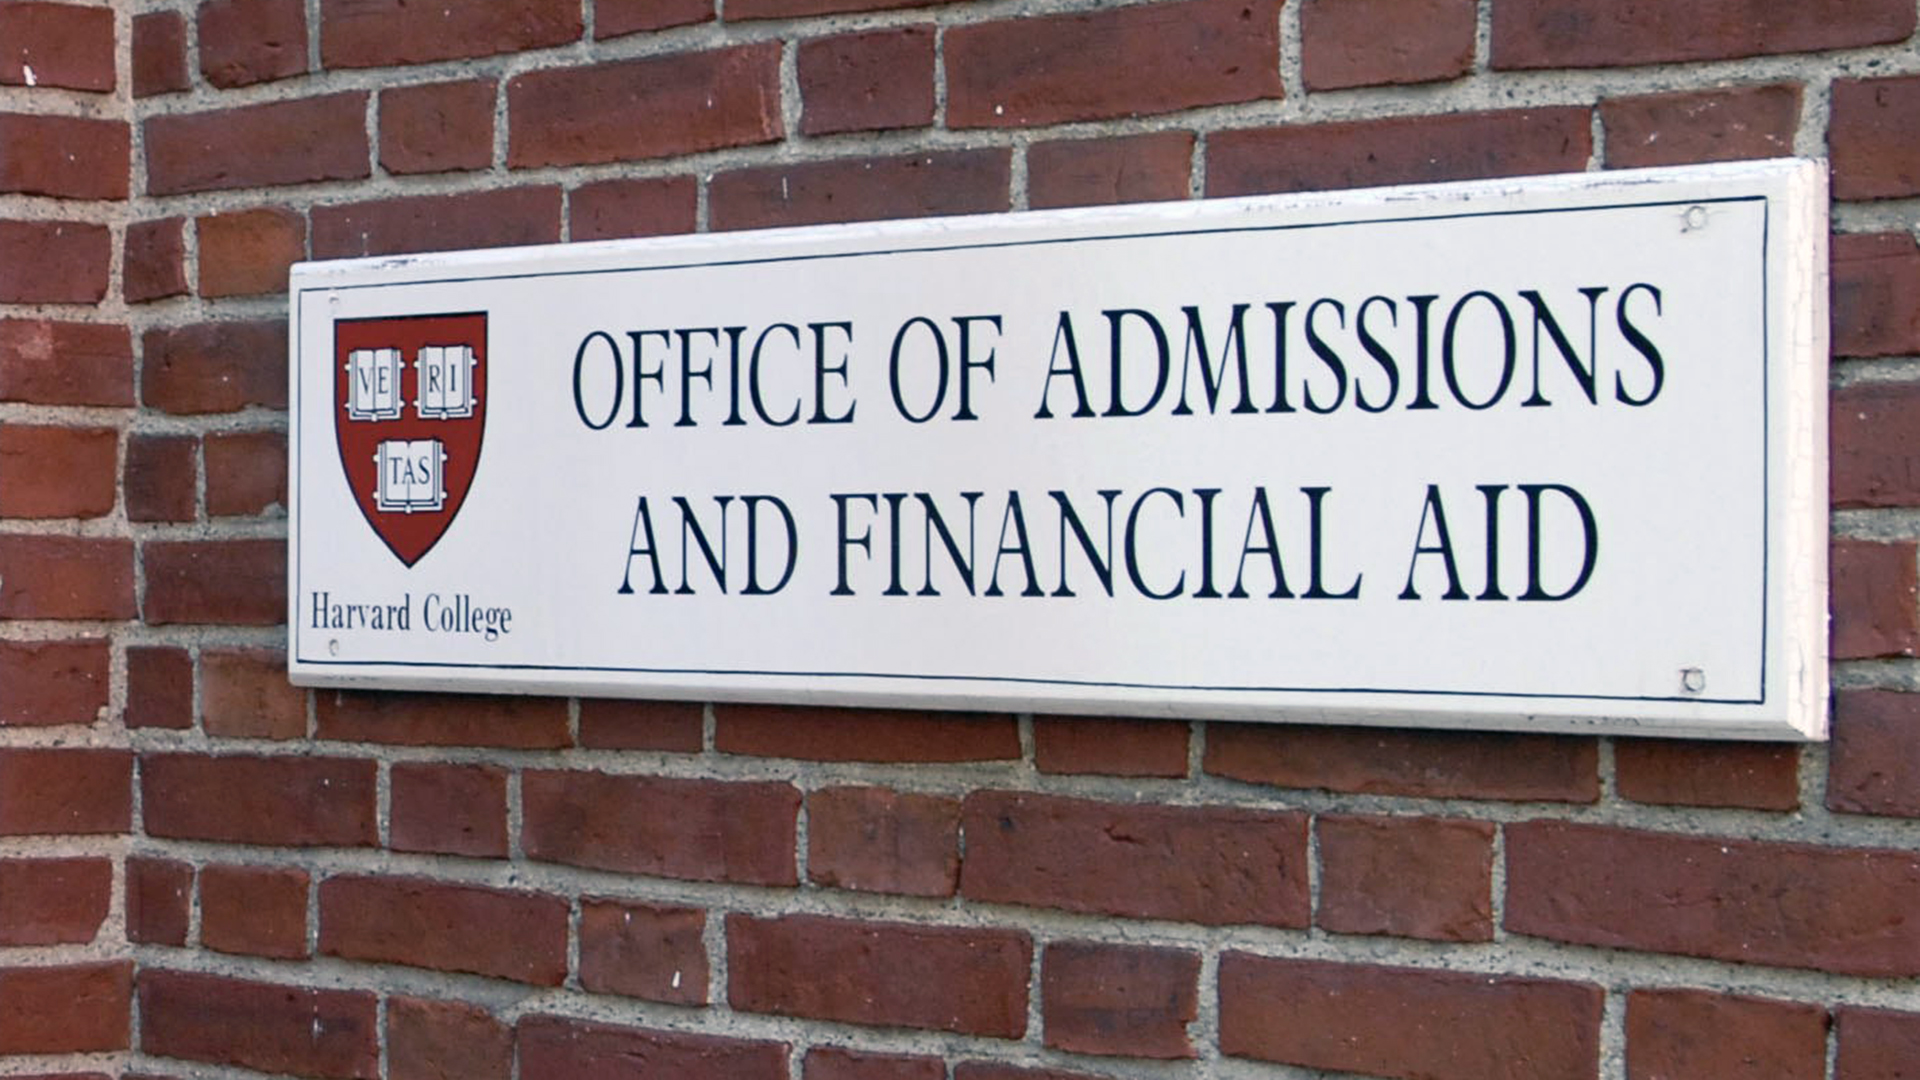 Harvard University Office of Admissions and Financial Aid sign-159532.jpg81496811